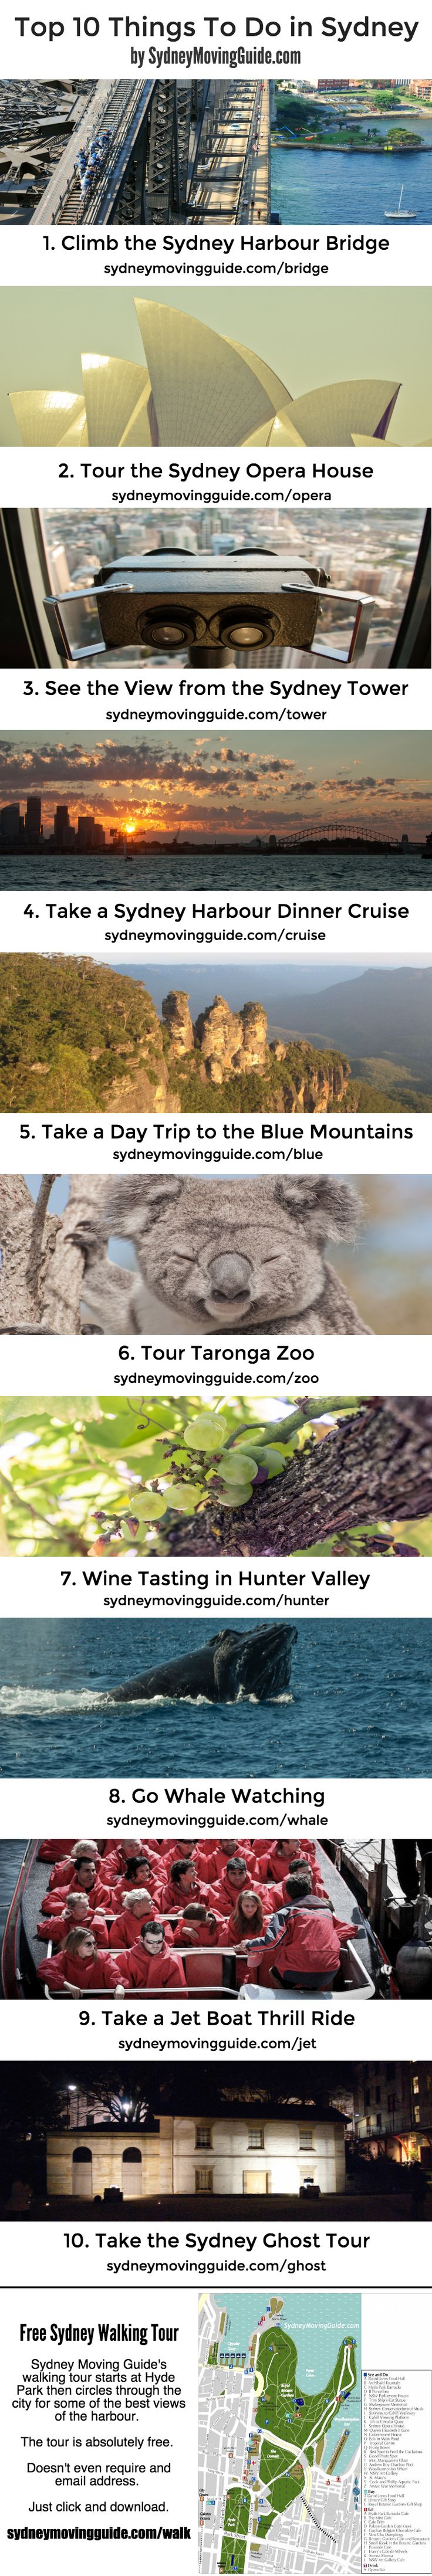 Things to do in Sydney   Australia   Travel   Adventure    Top Ten Things To Do in Sydney including a free city walking tour. Just click to download. Absolutely free, not even an email is requried.